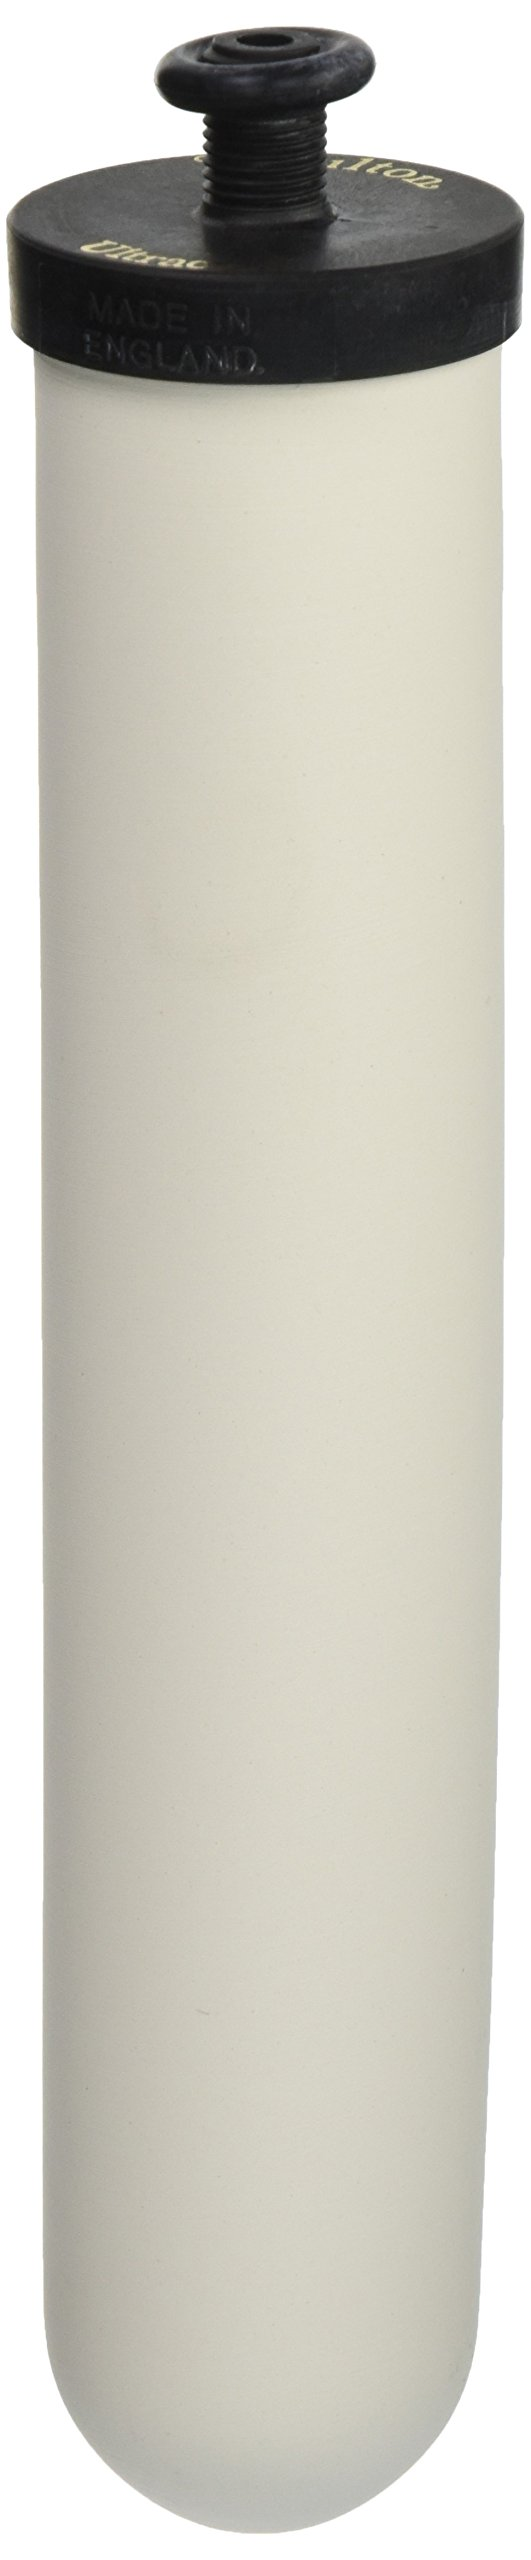 Doulton Ultracarb 10'' Water Filter Candle, 2-pack (W9123053) by Doulton